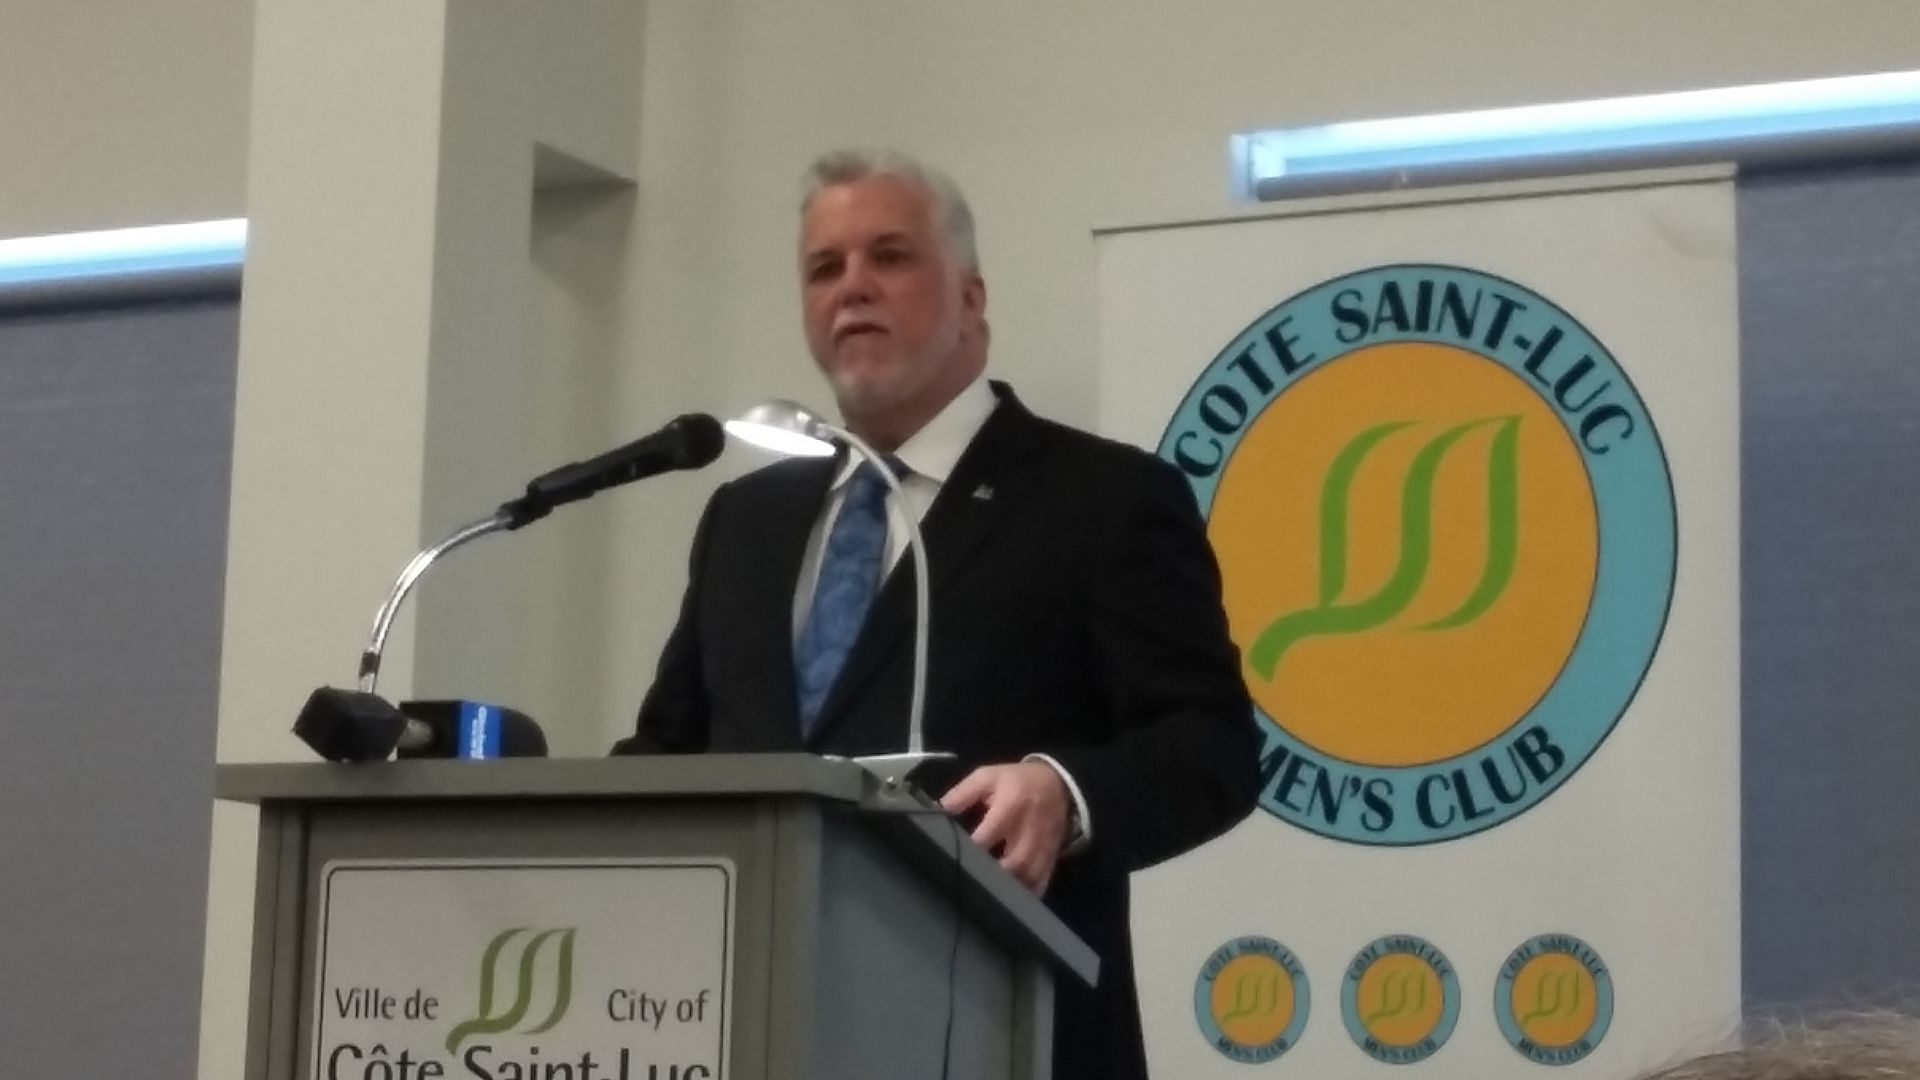 Not ruling out law on riding change criteria: Couillard